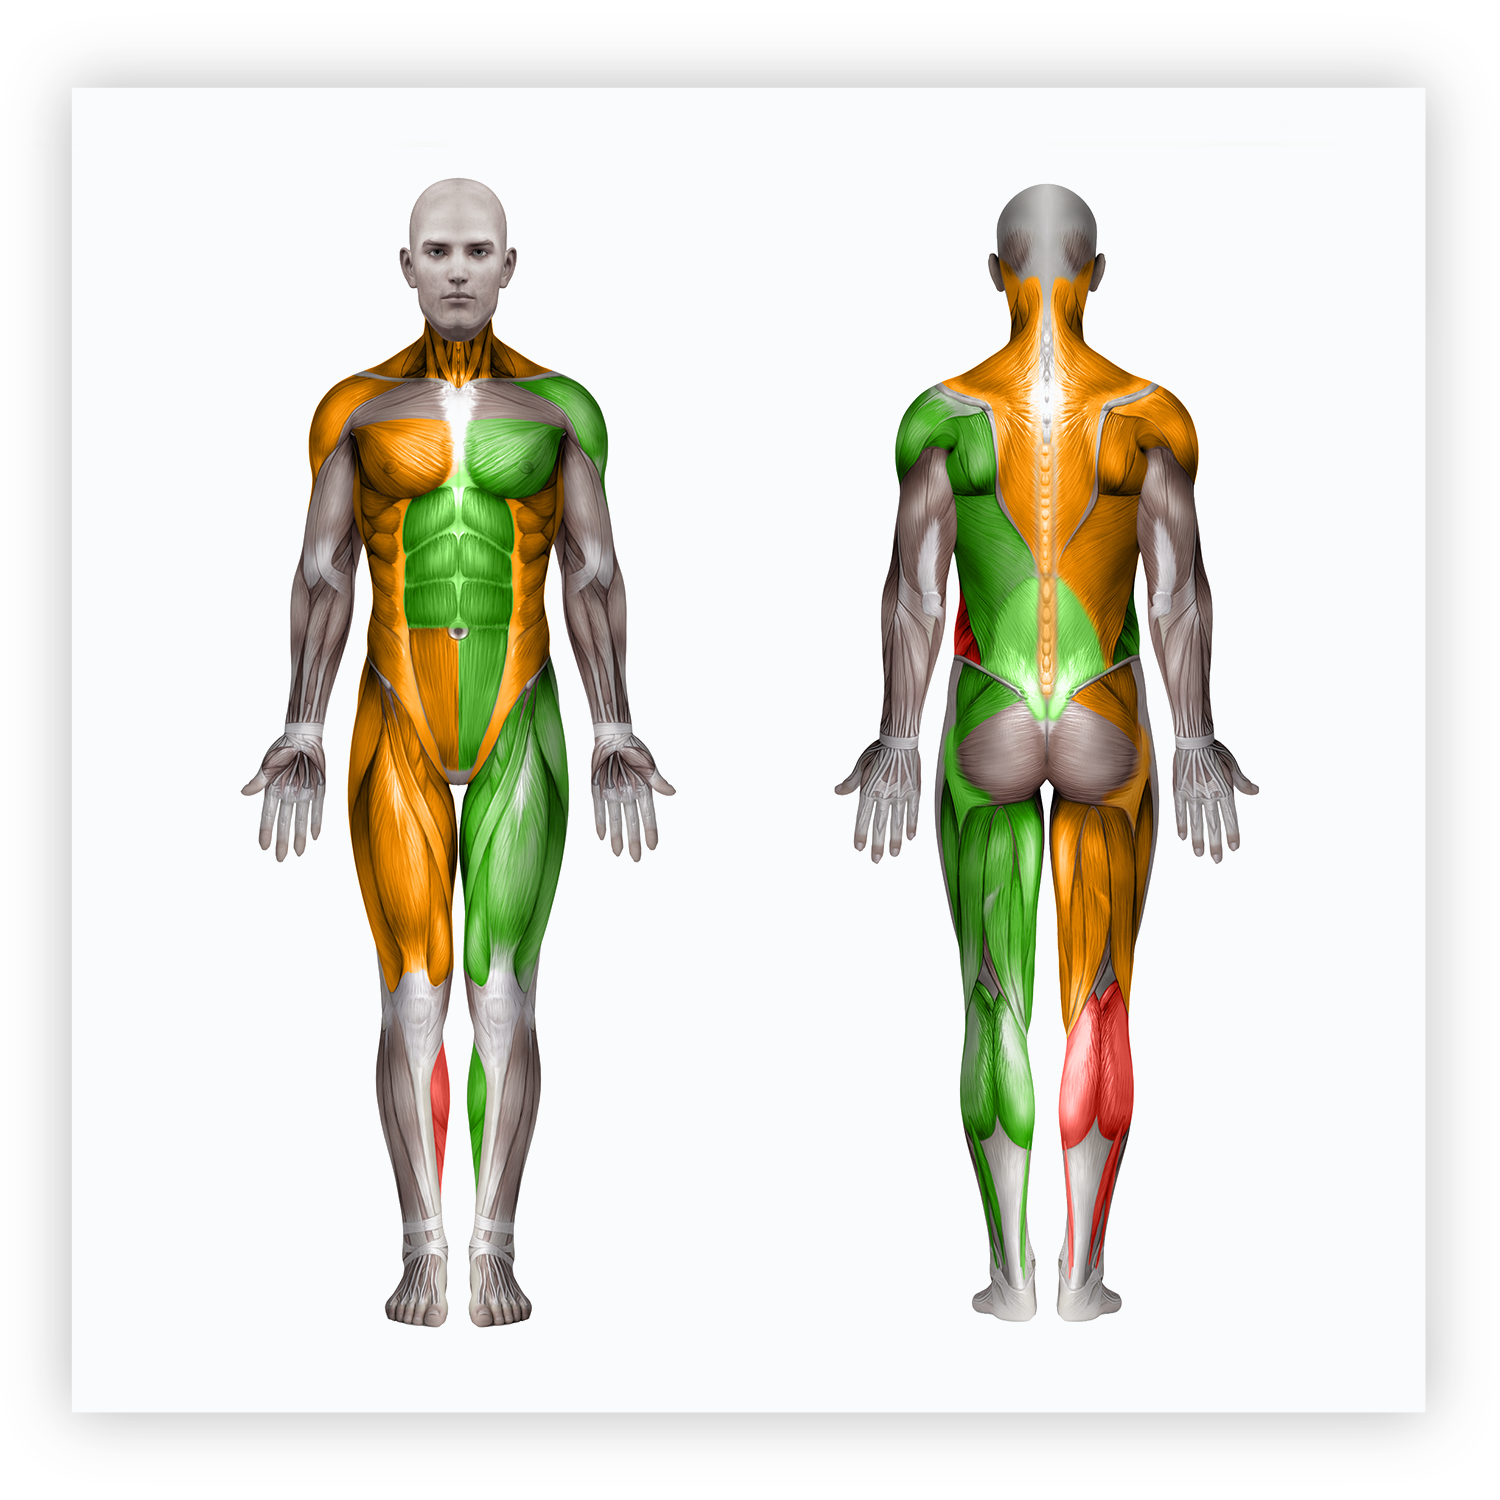 The Body Avatar - The Body Avatar is a color-coded representation of the ROM measurement data collected in the evaluation. It displays the length-tension relationships for both the front and back of the body. The Body Avatar is an invaluable resource for increasing participant engagement and motivation, as well as providing the professional with a quick summary of the evaluation.